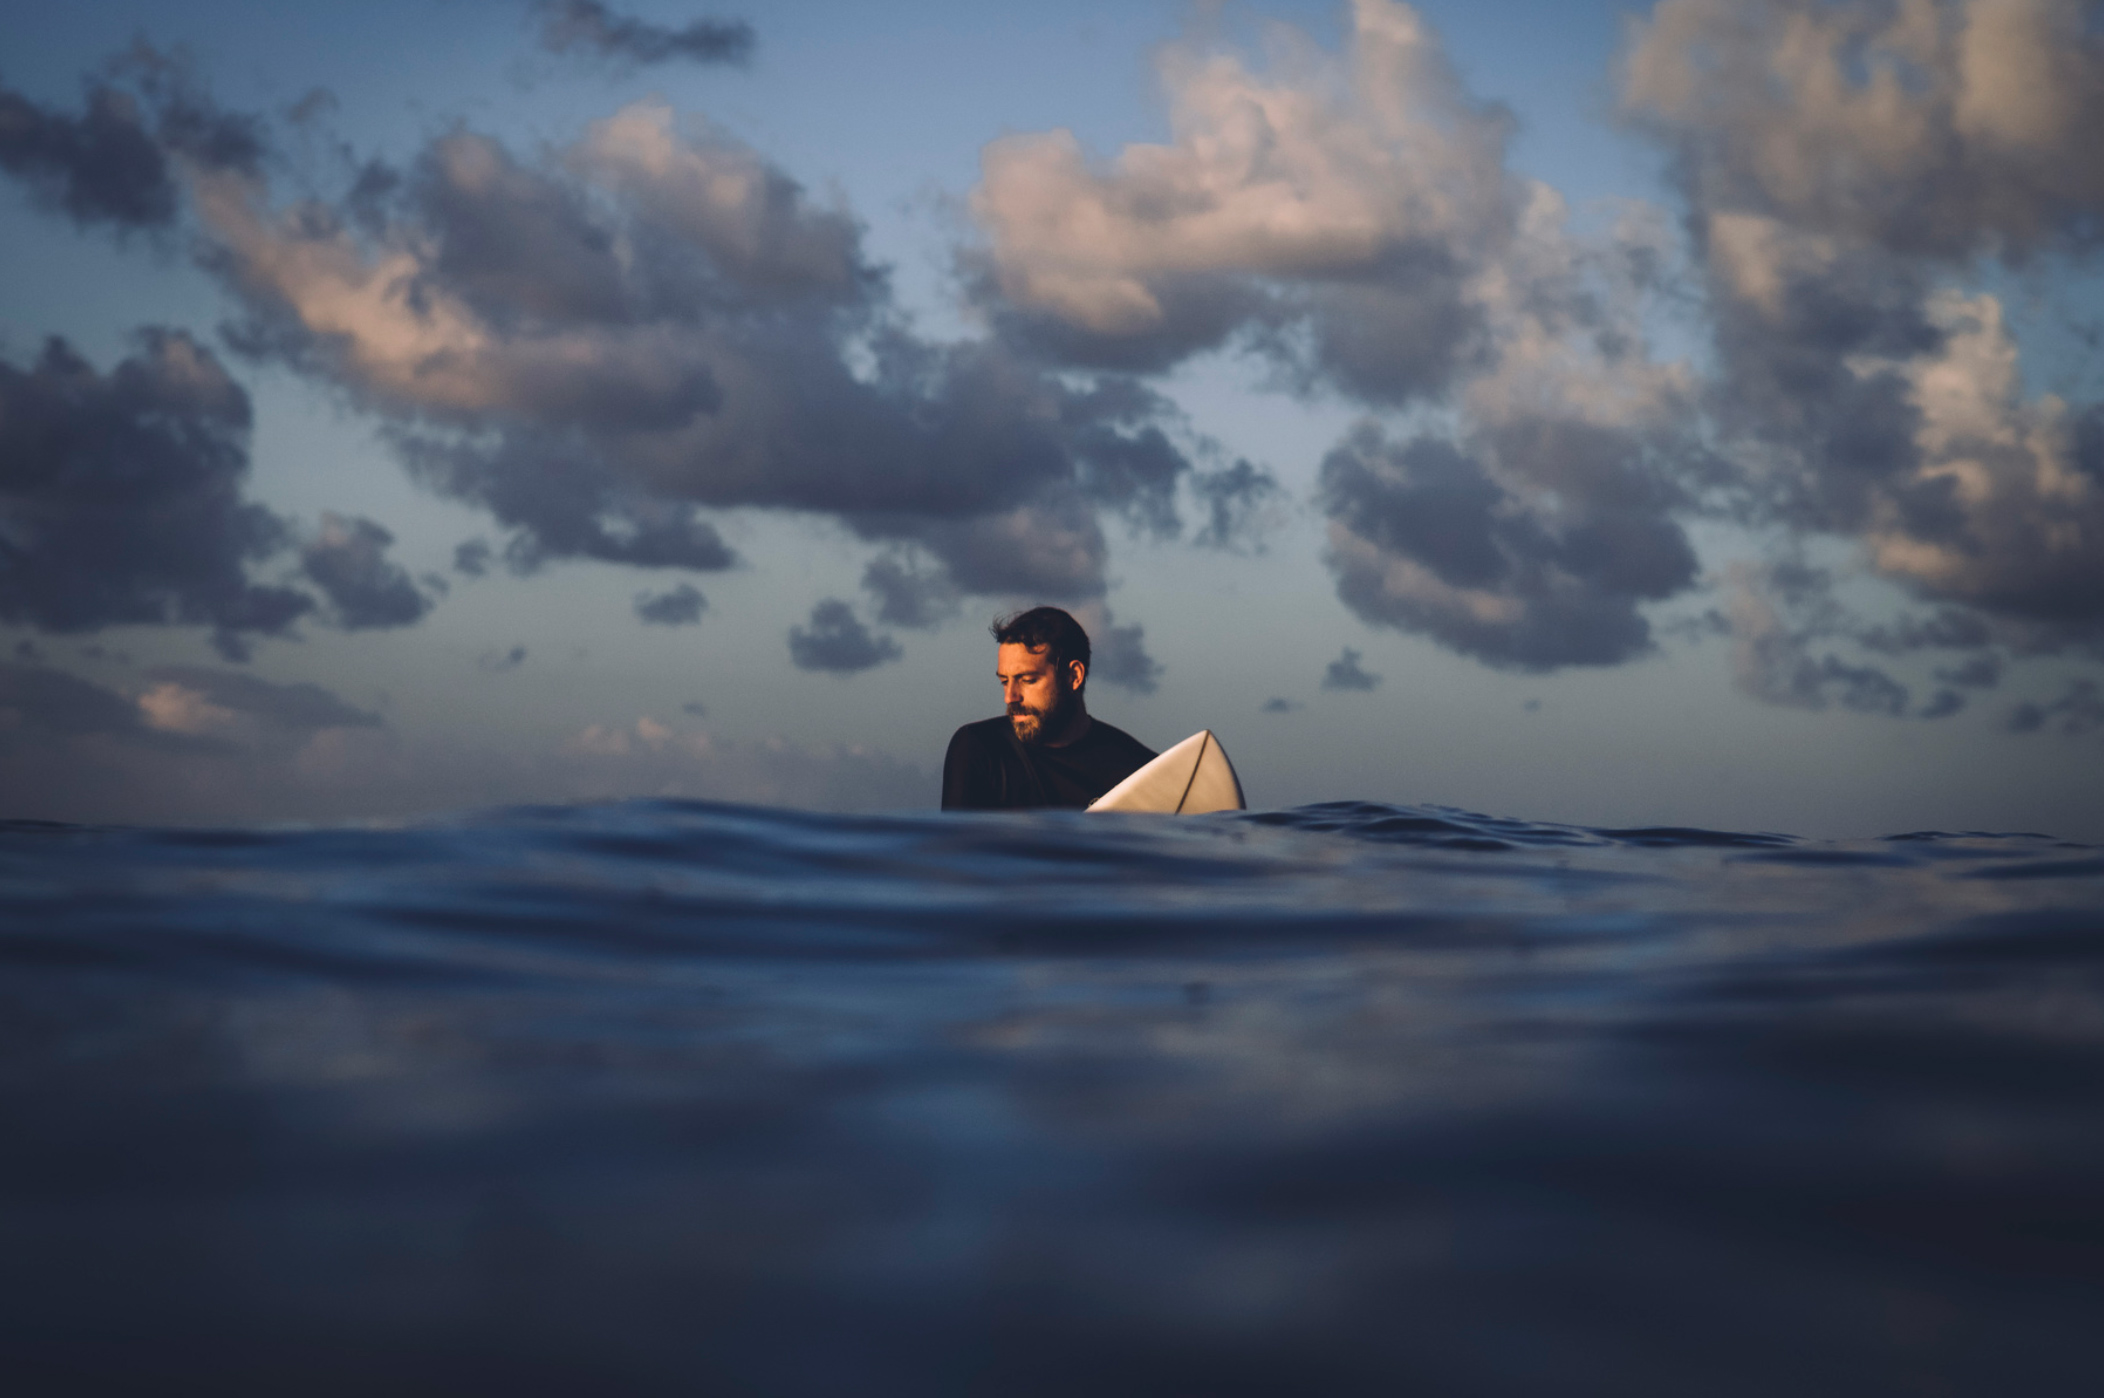 Dramatic Surfing Photos by Kalle Lundholm